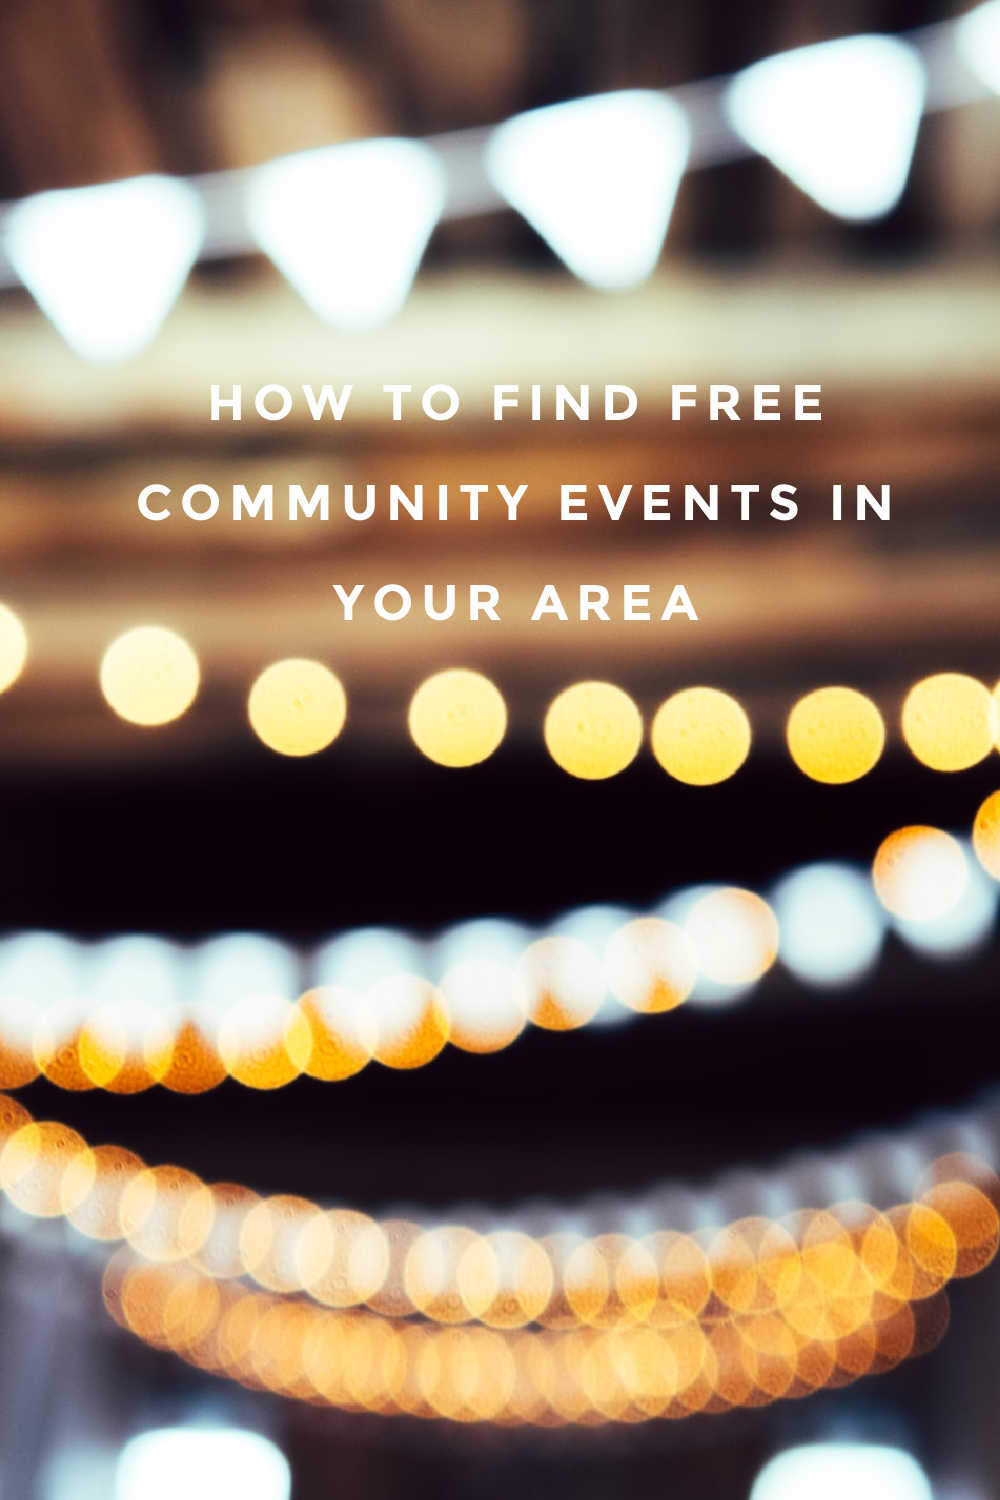 HOW TO FIND FREE EVENTS